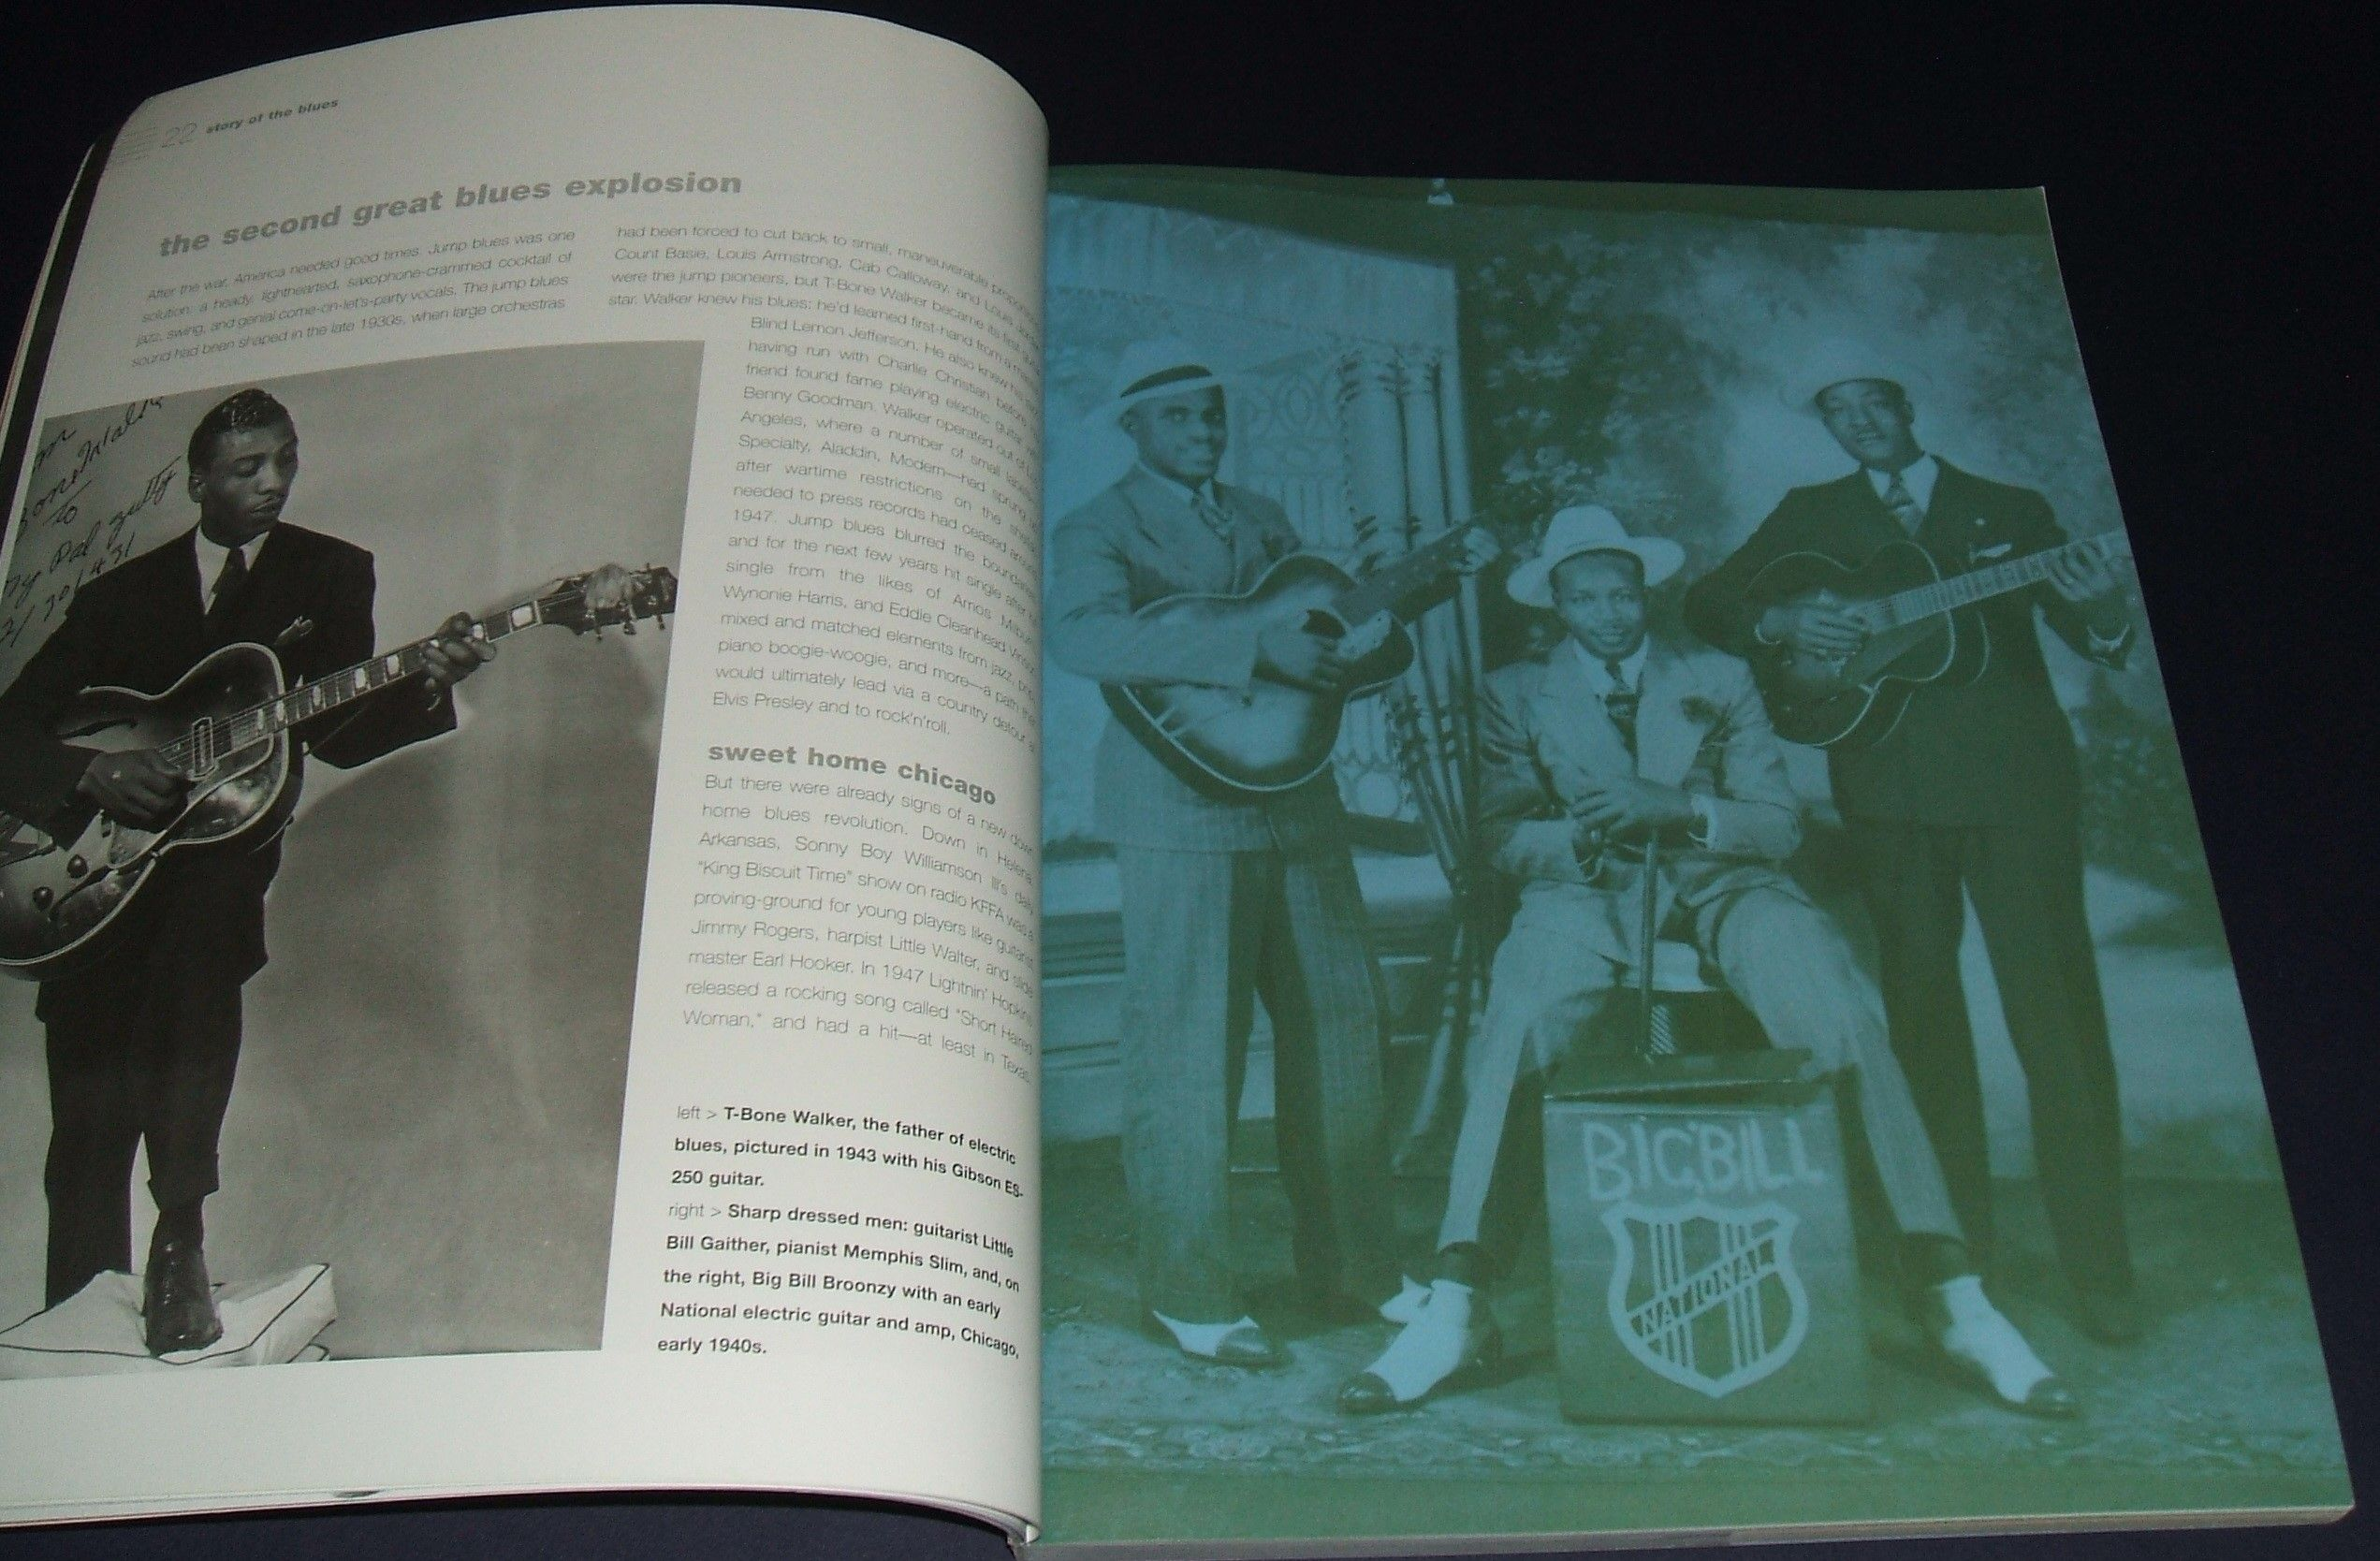 The American Blues Guitar: an Illustrated